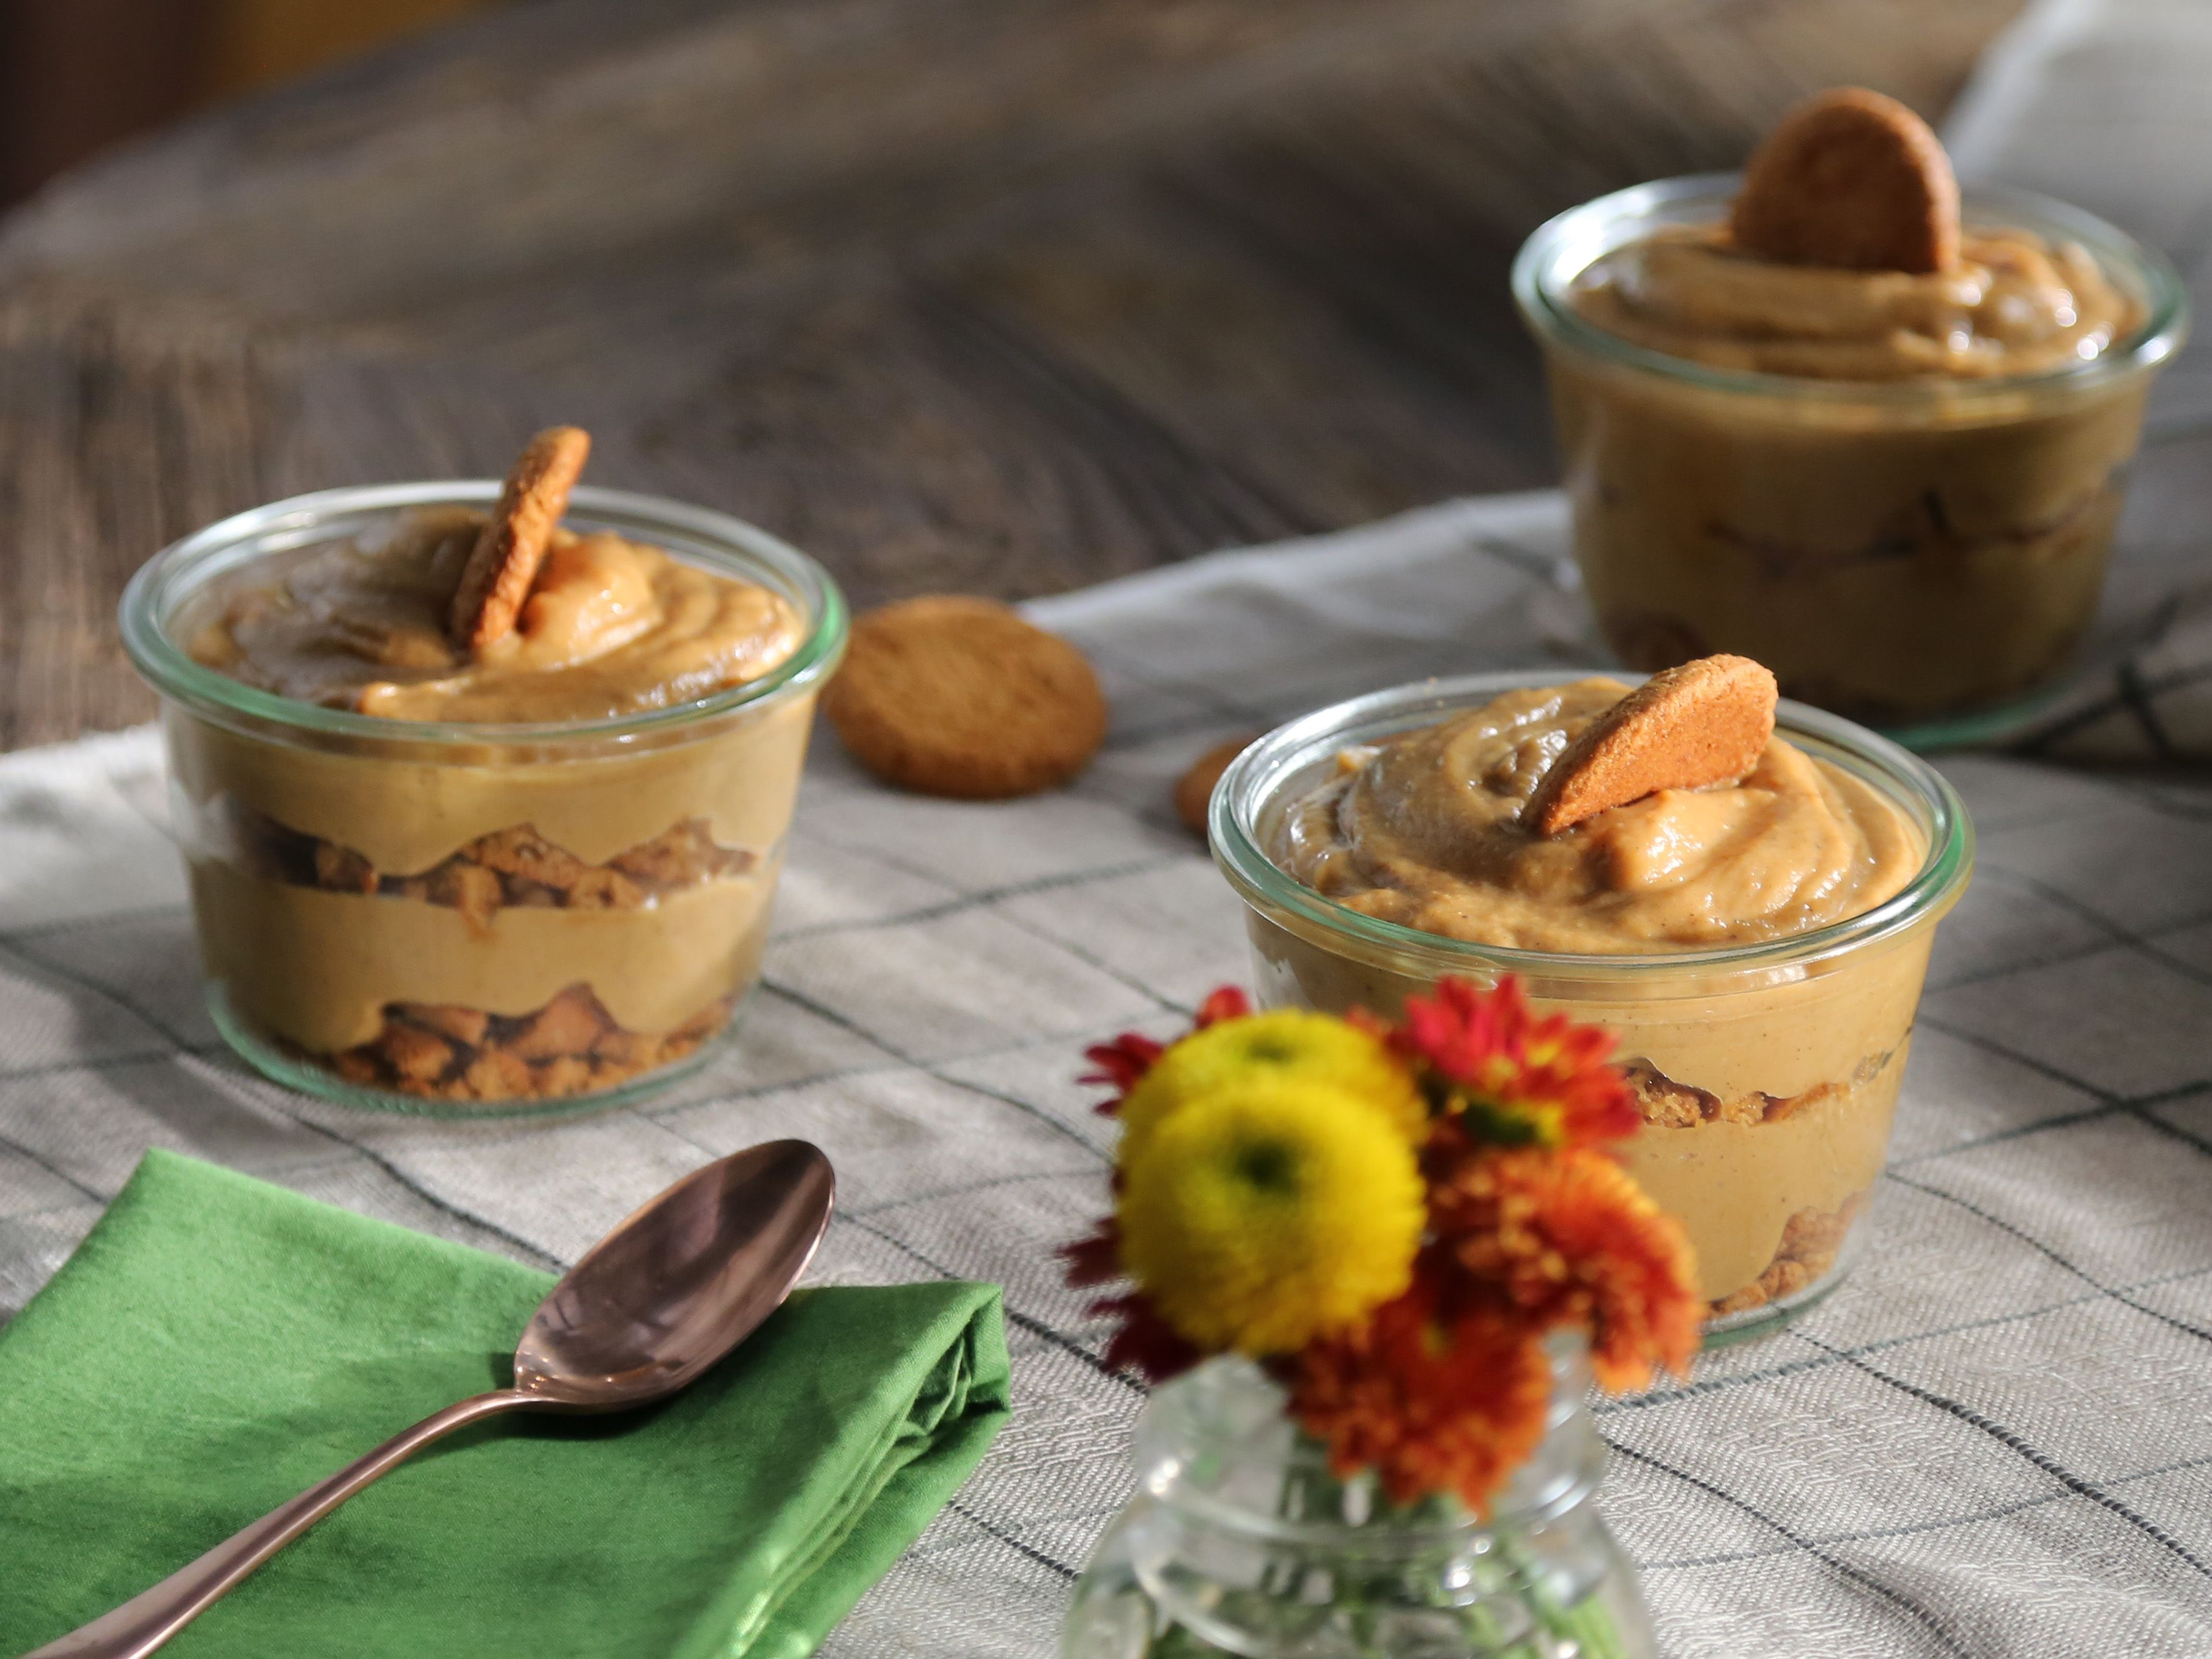 481 best cheesecakes desserts images on pinterest petit fours valeries pumpkin pudding for wolfie pudding dessertseasy dessertseasy sweetsdessert recipesdessert ideasvalerie bertinellipumpkin puddingfood network forumfinder Image collections